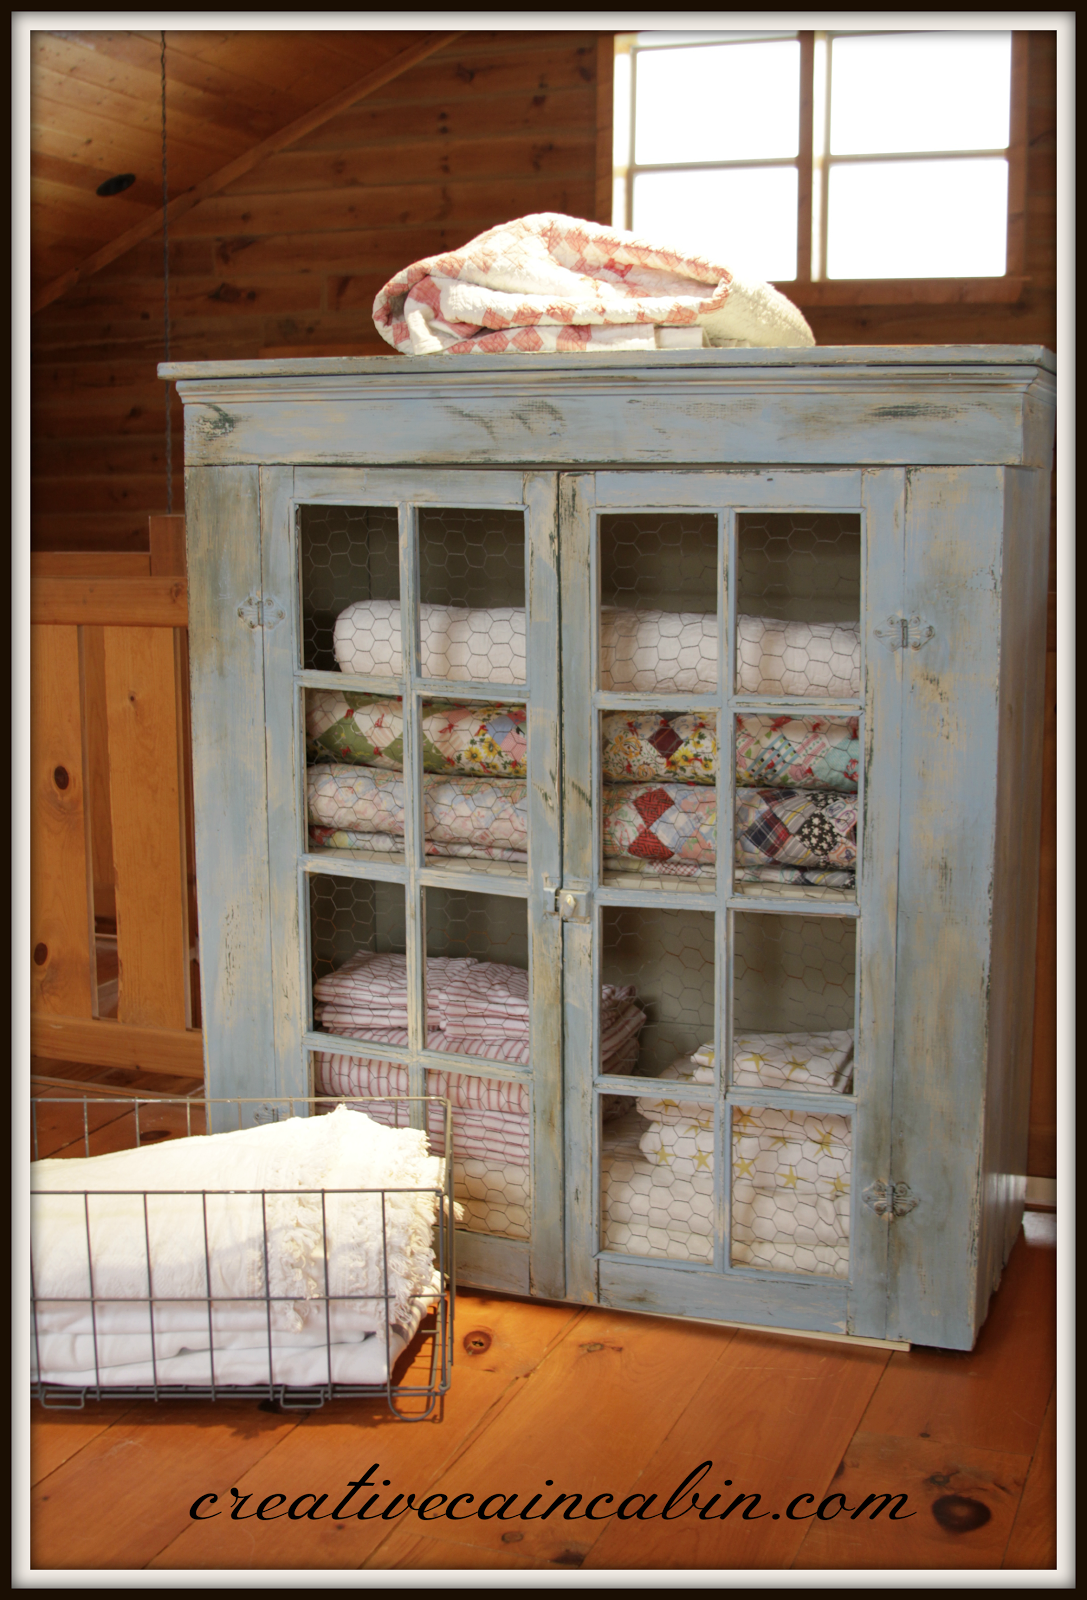 Quilt Cabinet Makeover   CREATIVE CAIN CABIN